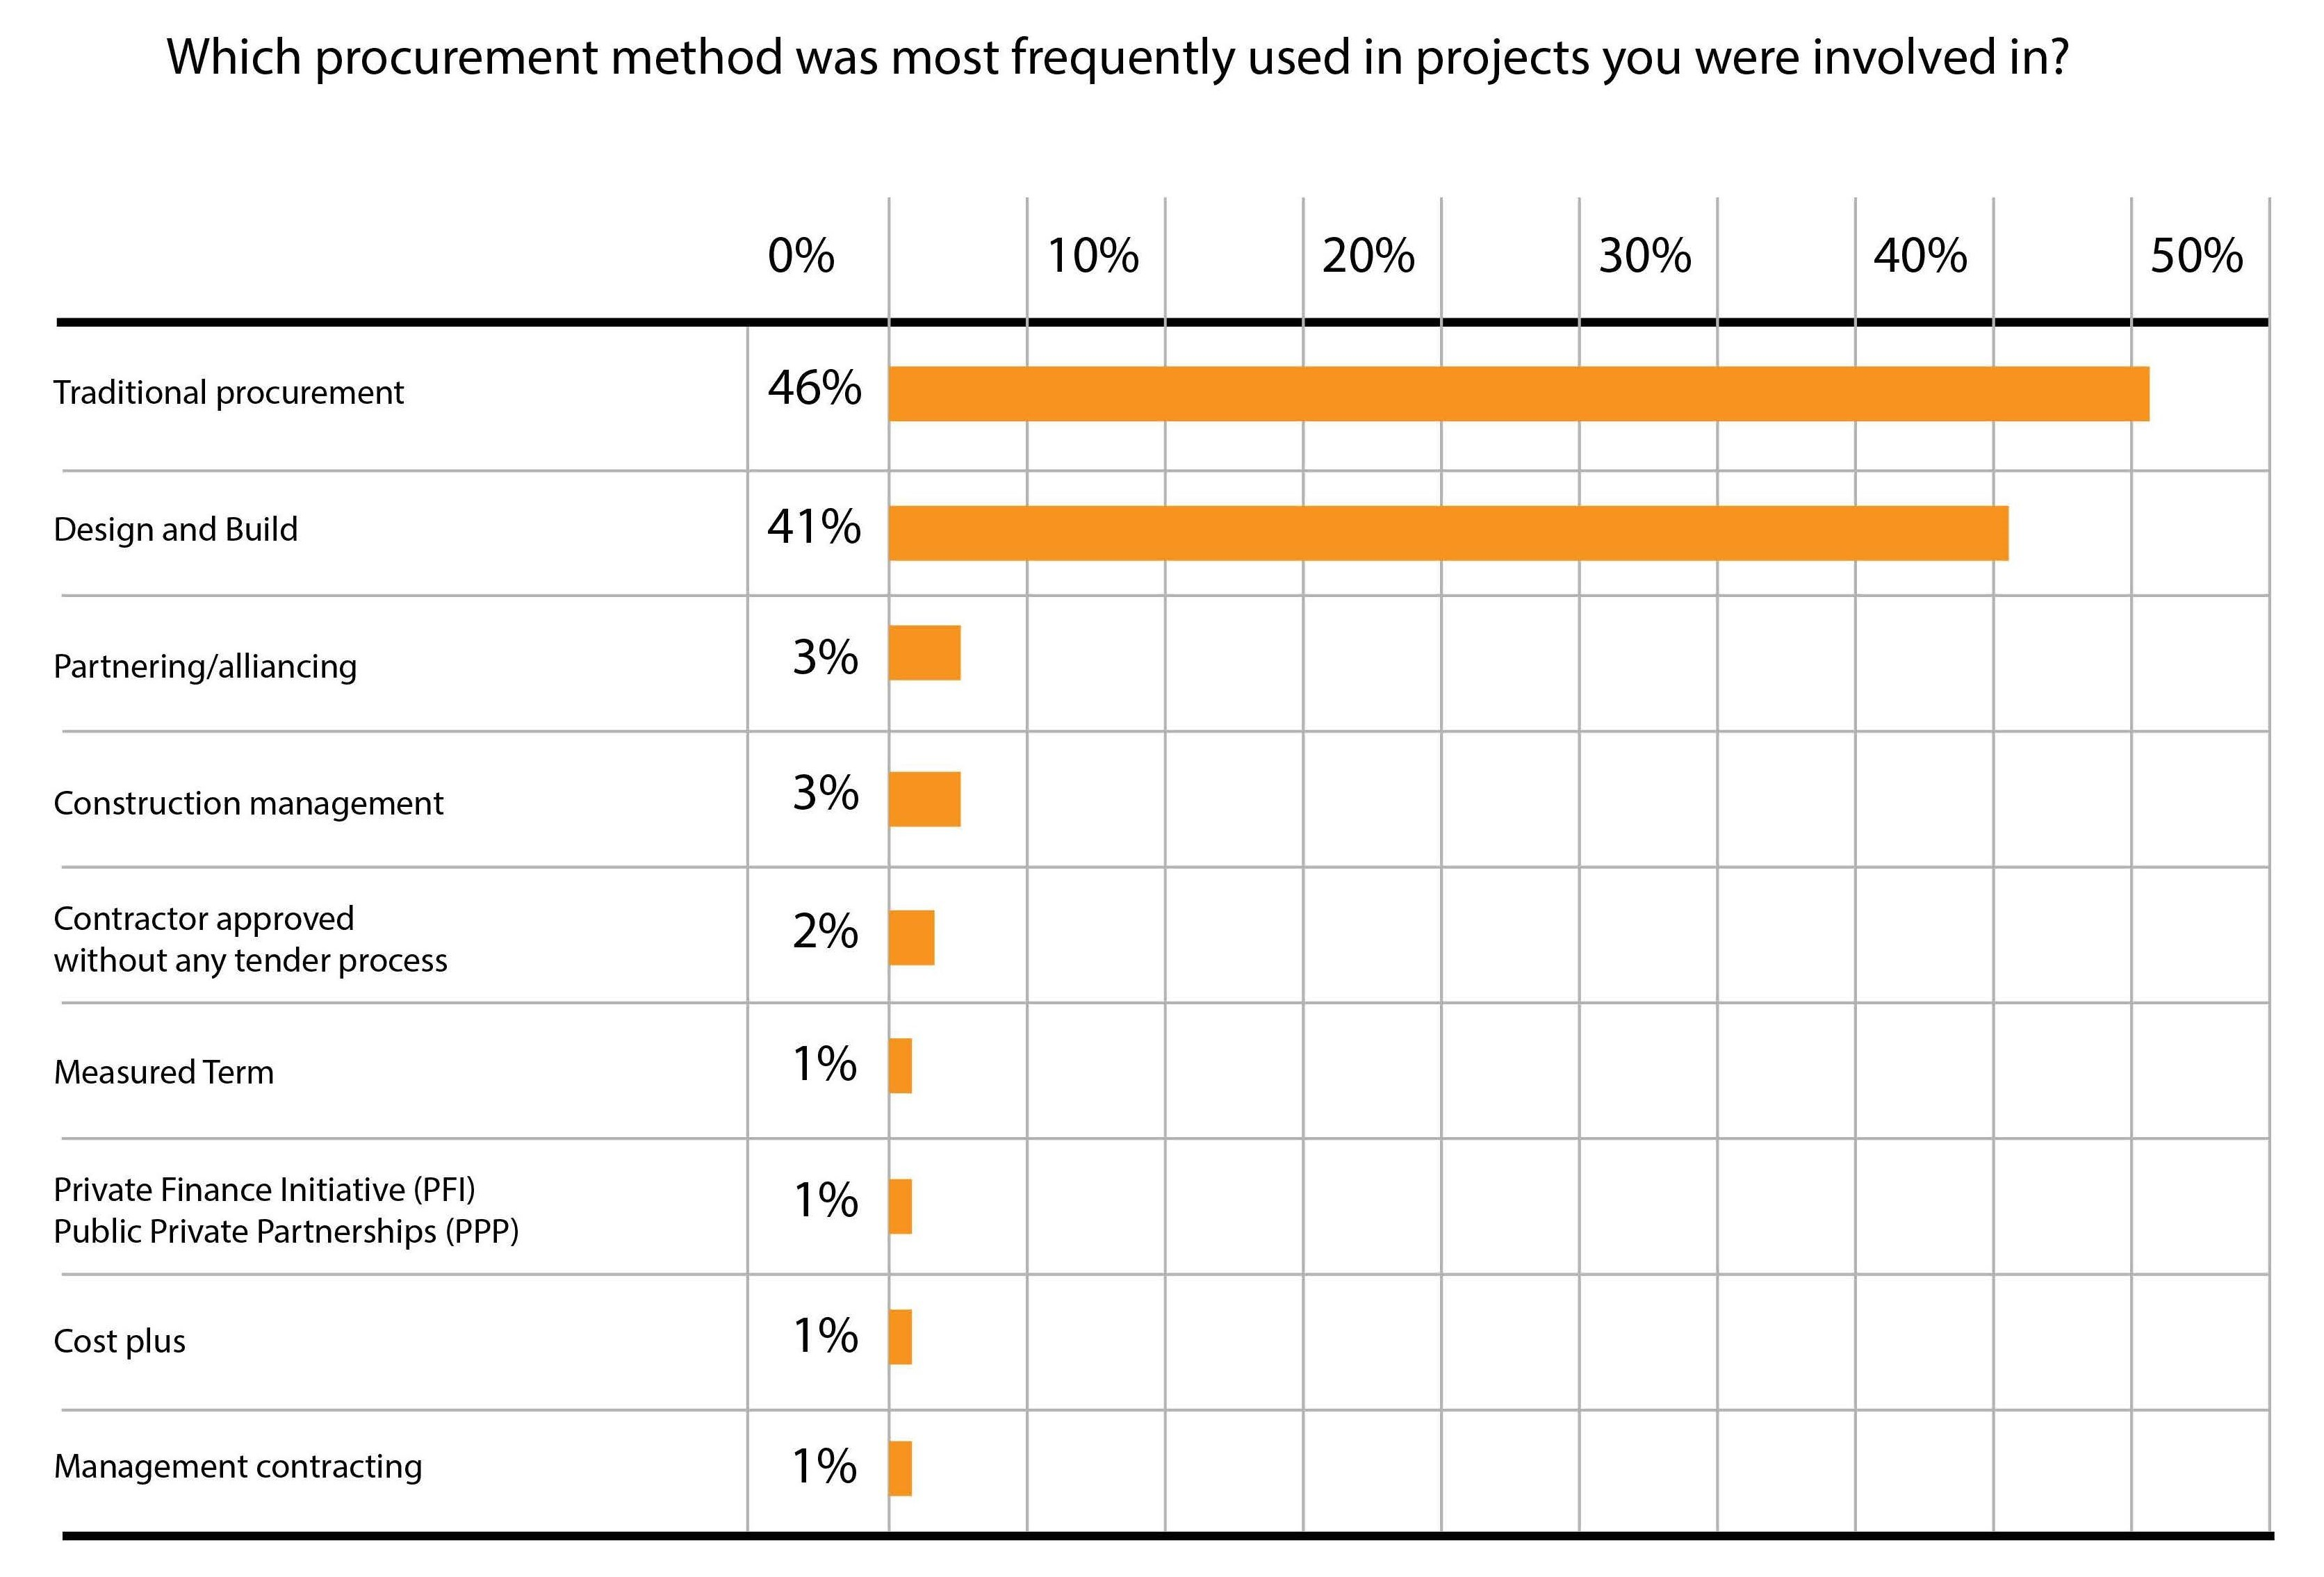 The procurement method frequency graph shows traditional procurement at 46%, design and build at 41%, partnering or alliancing at 3%, construction management at 3%, contractor approved without any tender process at 2%, measured term at 1%, private finance initiative (PFI)/public private partnership (PPP) at 1%, cost plus at 1%, and management contracting at 1%